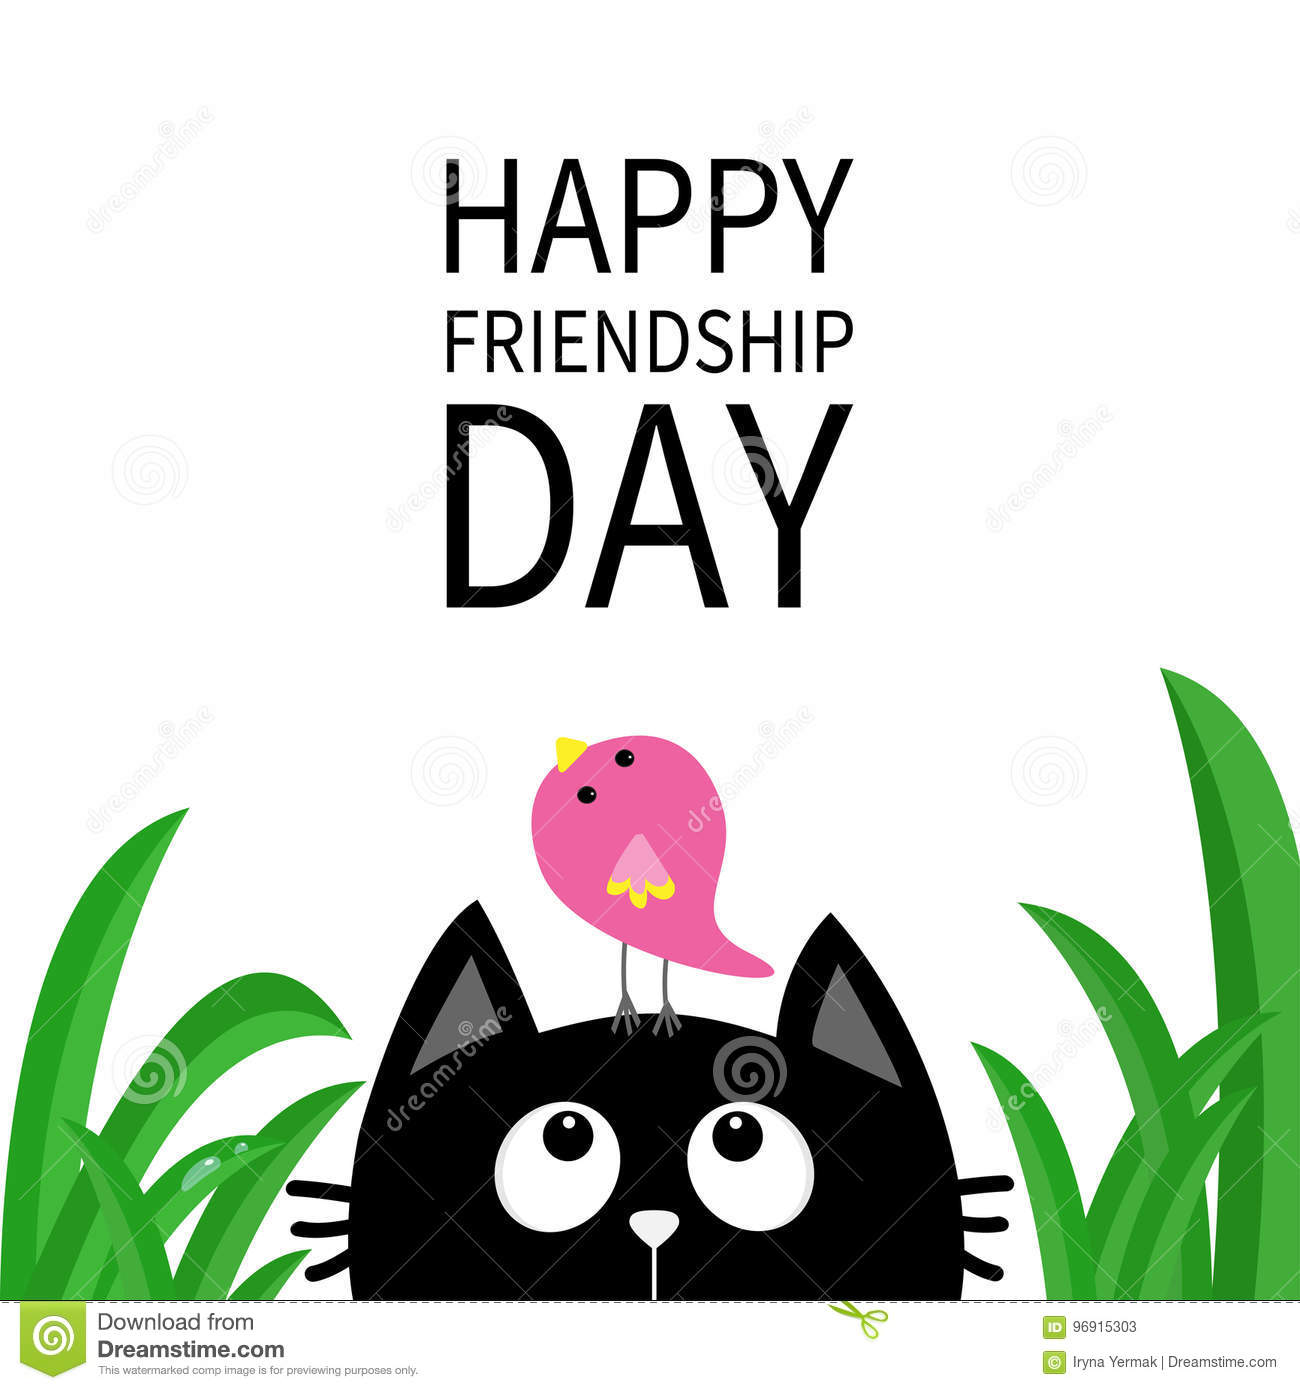 Happy Friendship Day Cute Black Cat Looking Up To Bird On Head